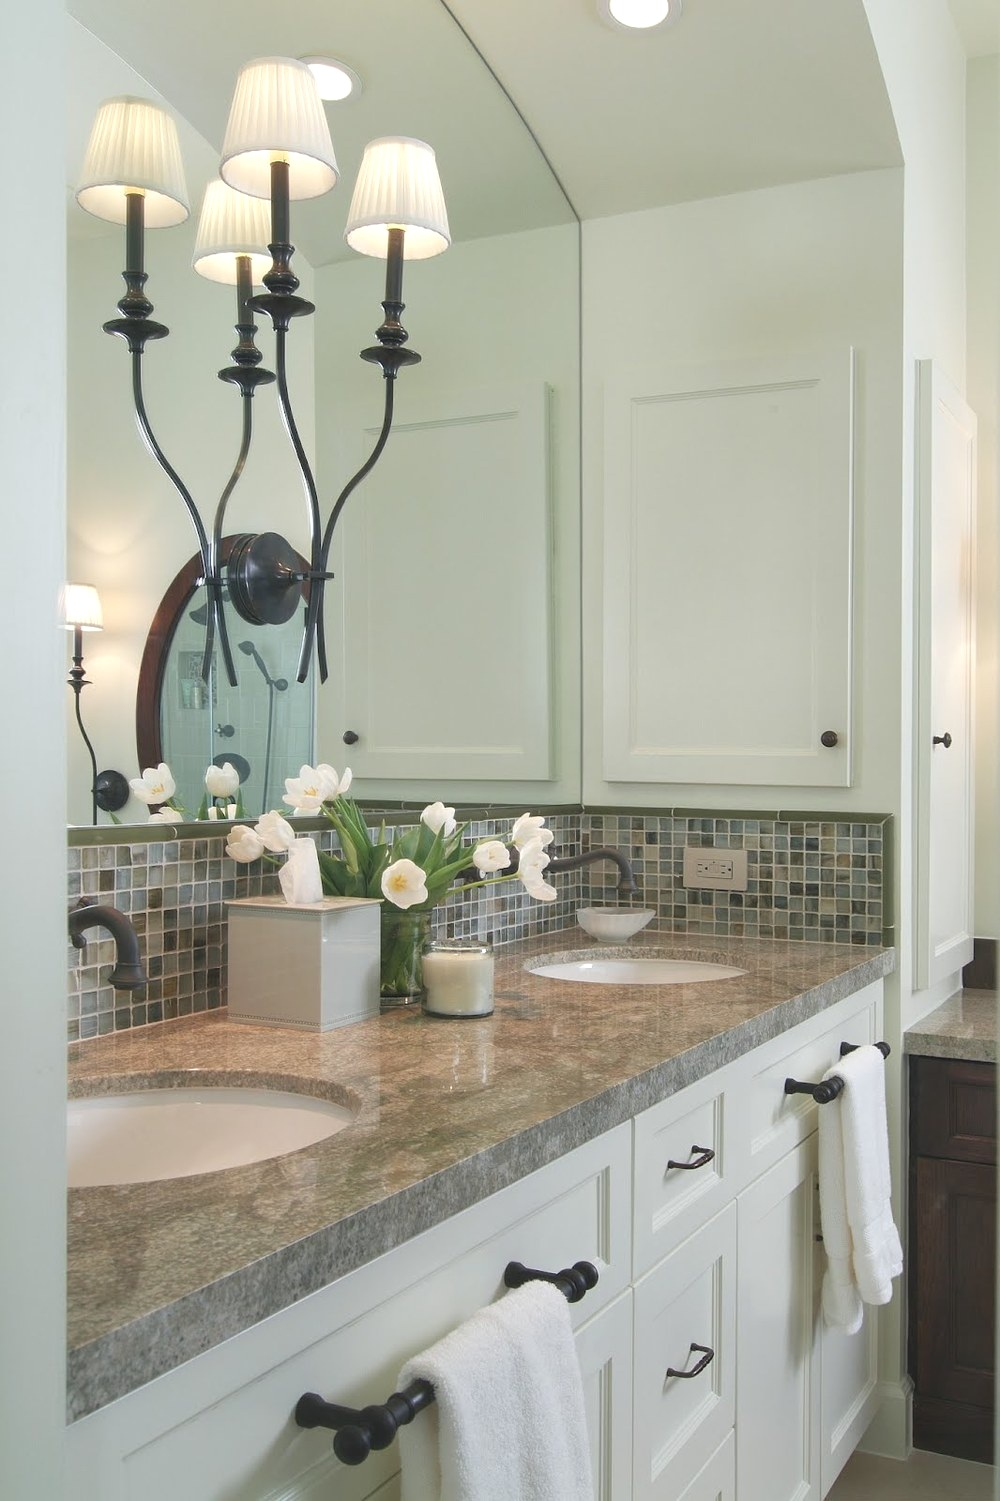 A central double wall sconce works well with in this bathroom between two sinks. Carla Aston, Designer #bathlight #vanitylight #wallsconce